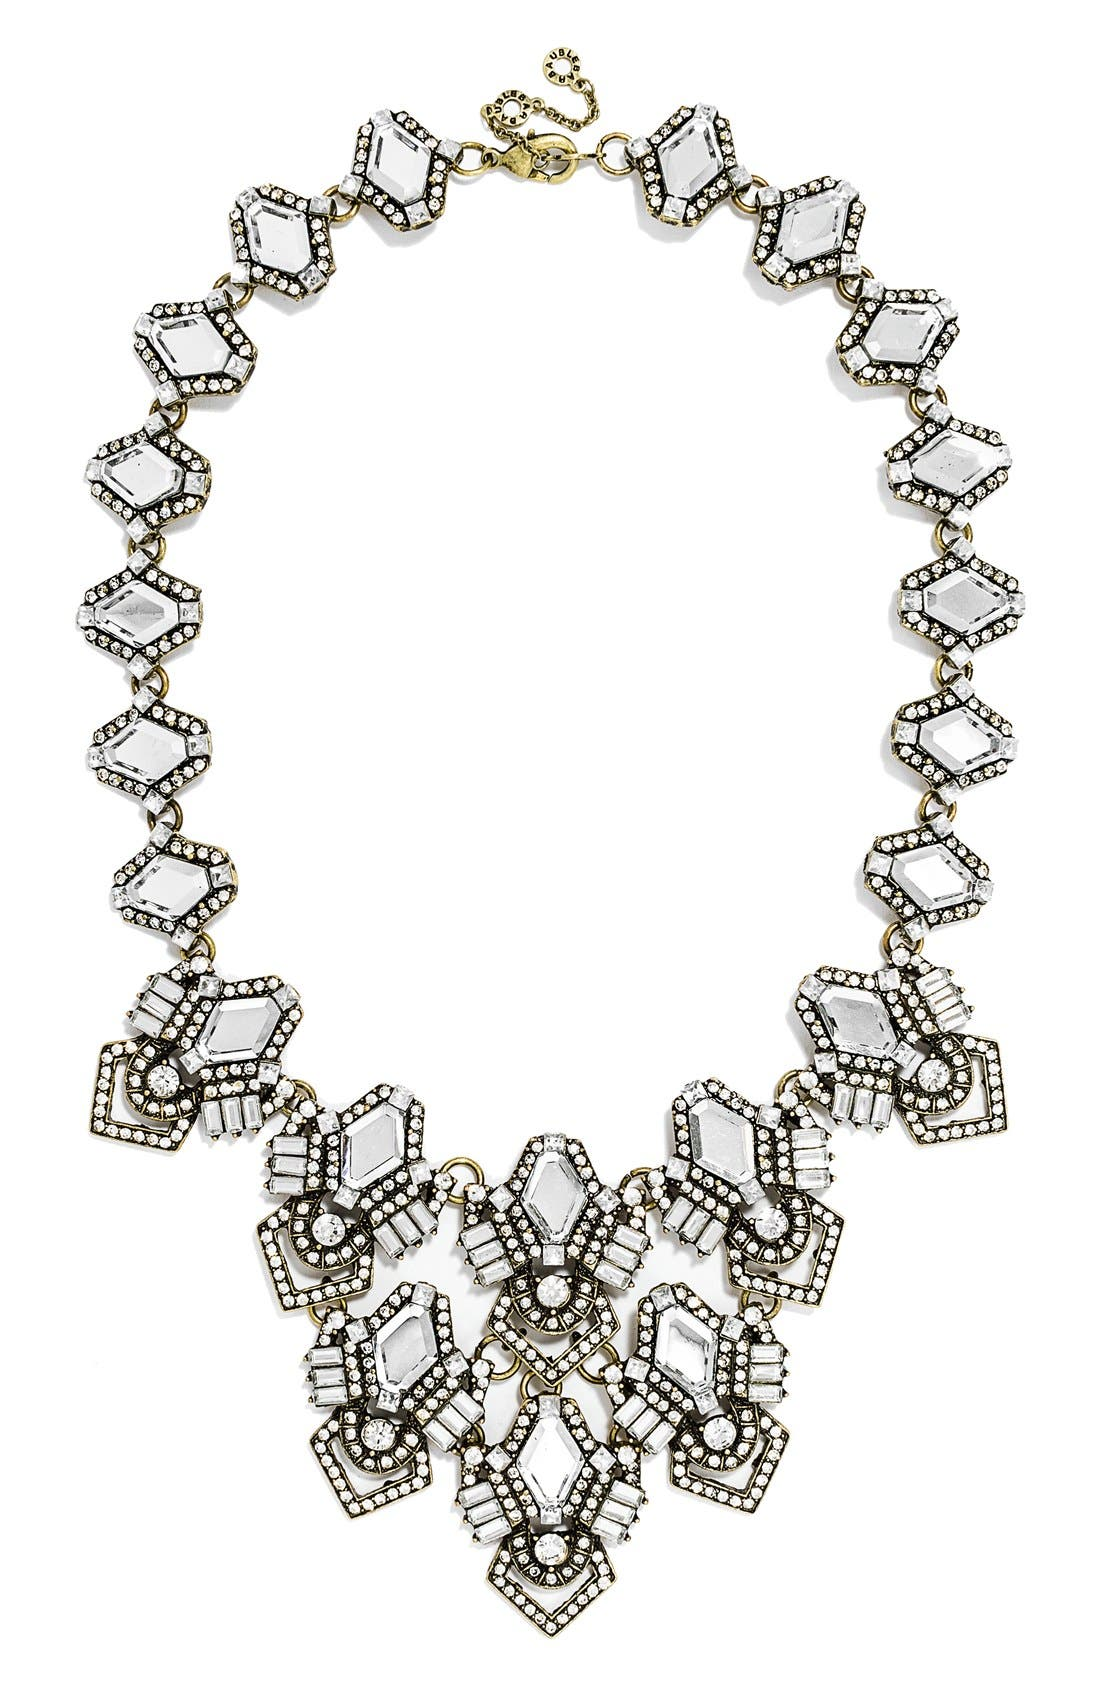 Alternate Image 1 Selected - BaubleBar 'Deco Diamond' Bib Necklace